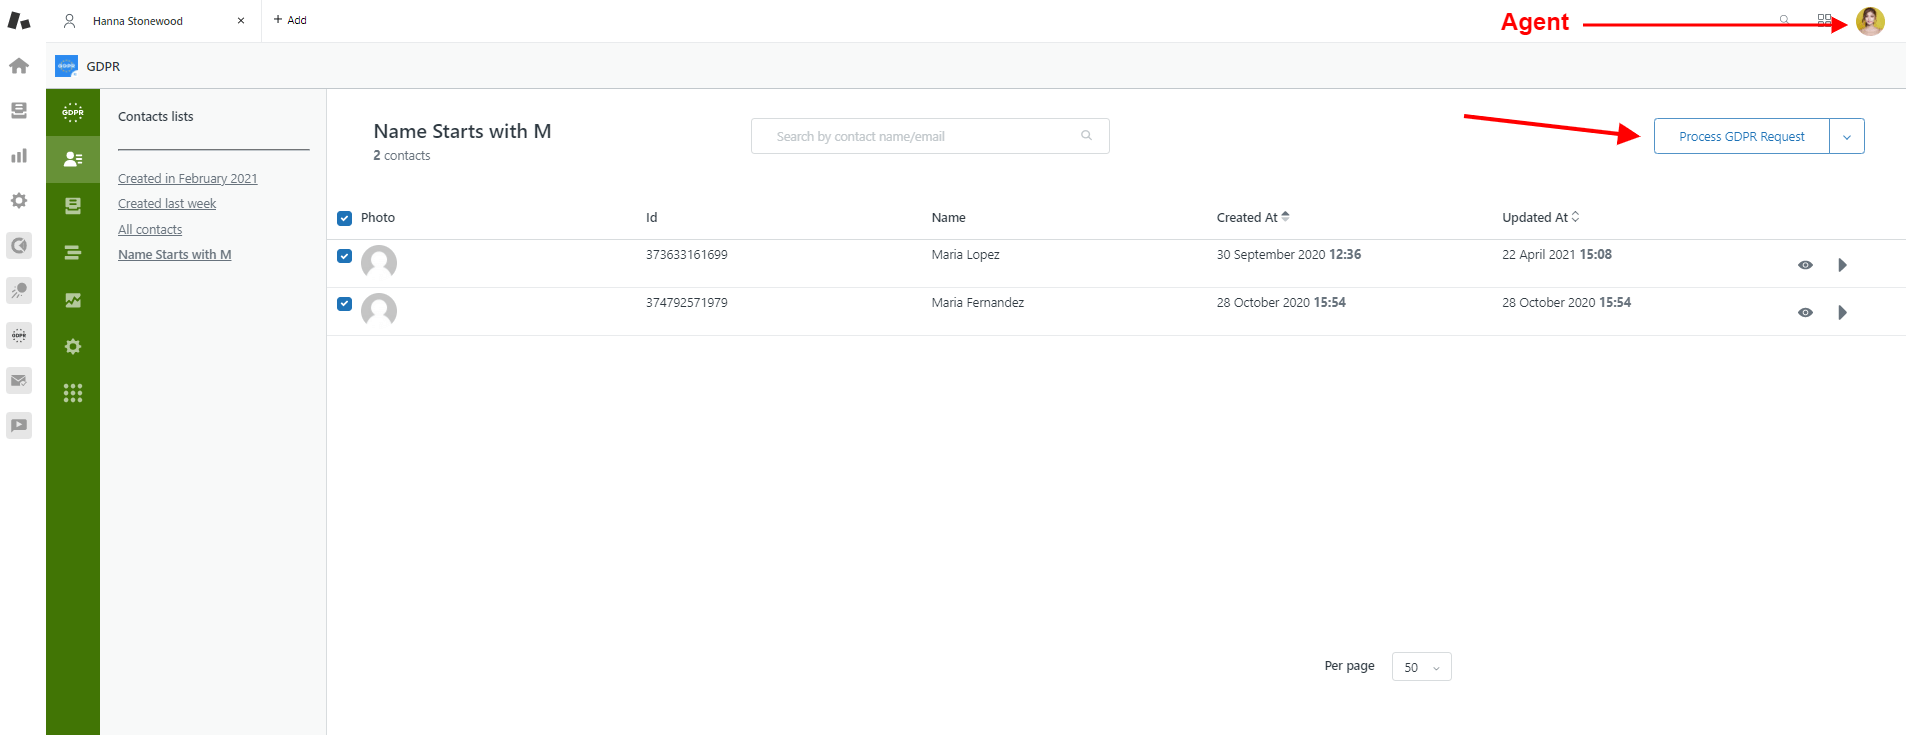 GDPR Compliance For Zendesk Agent